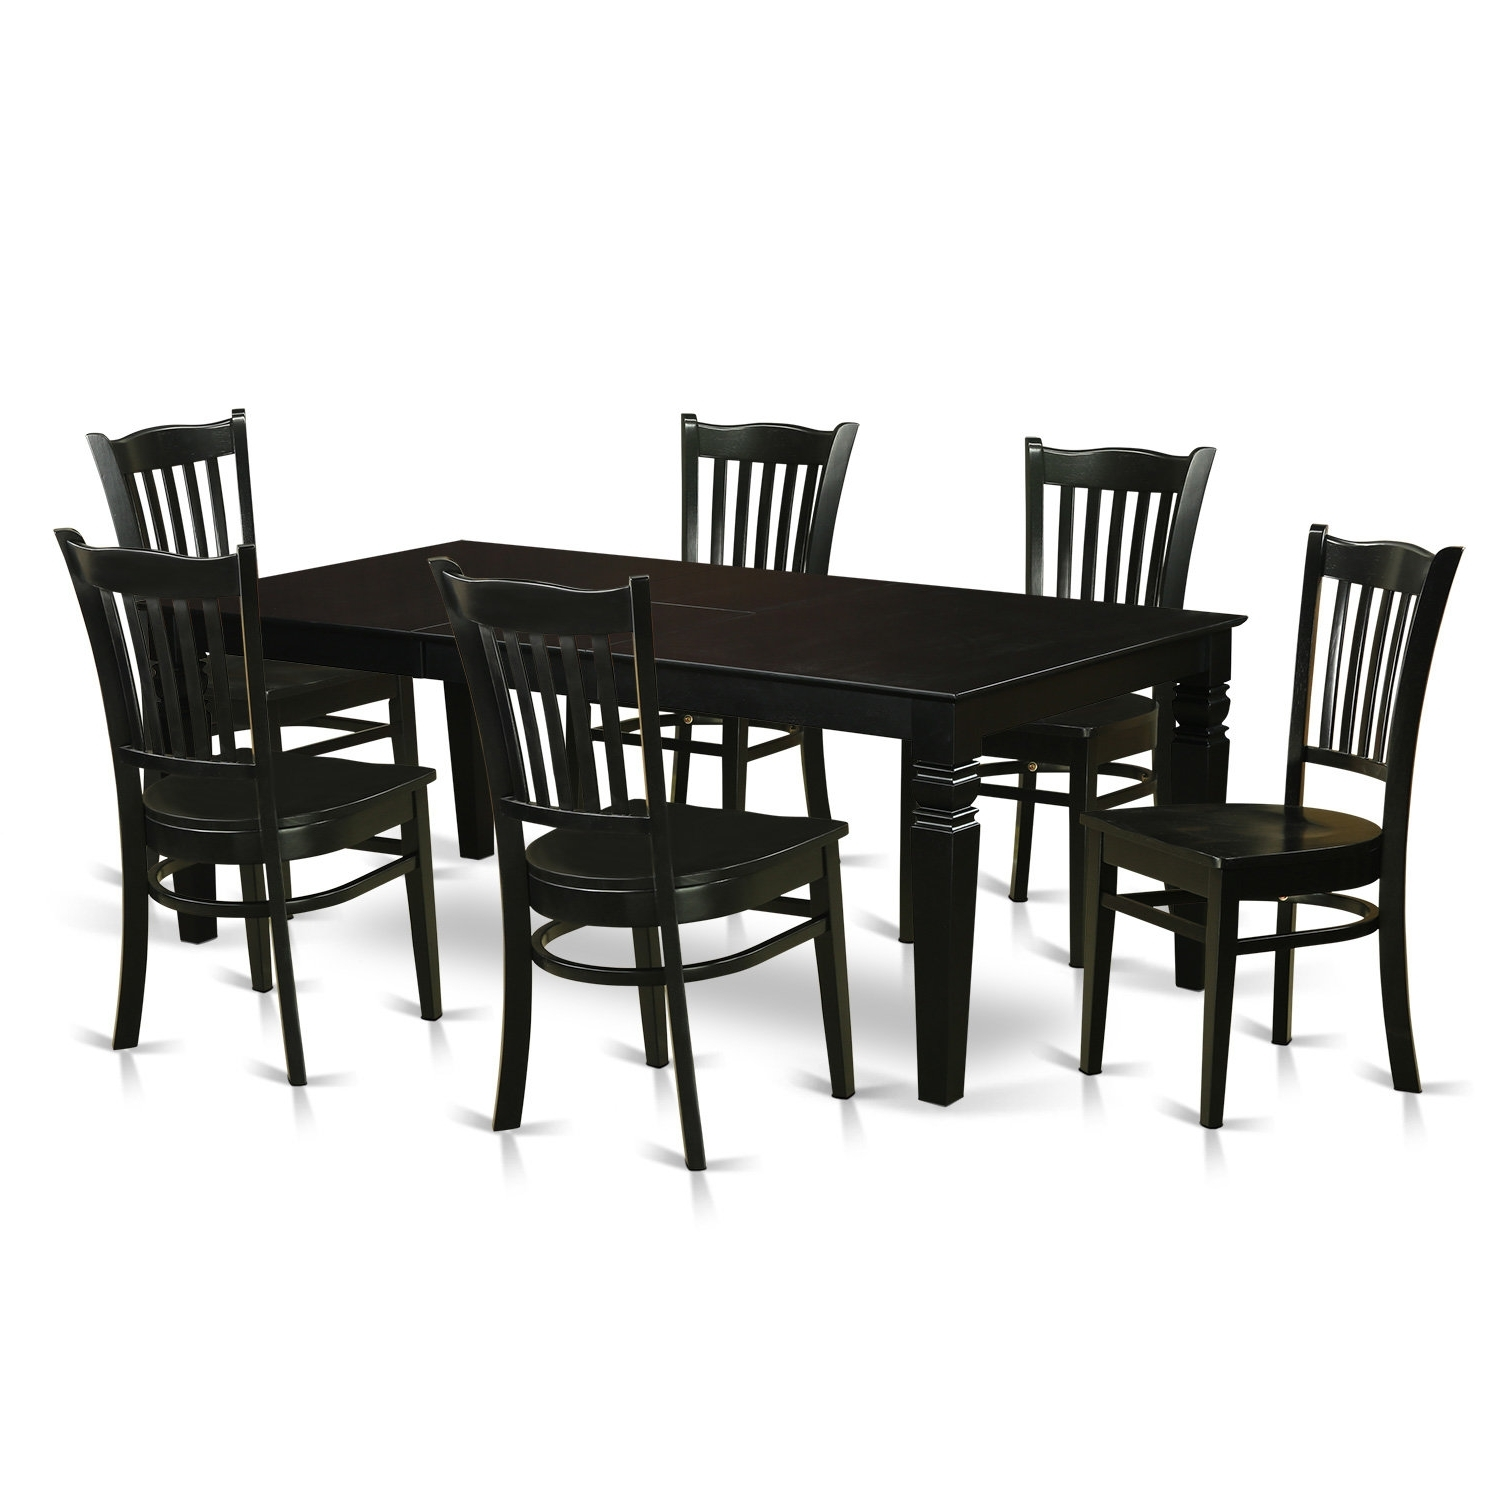 Wayfair Pertaining To Candice Ii 7 Piece Extension Rectangular Dining Sets With Uph Side Chairs (View 6 of 25)